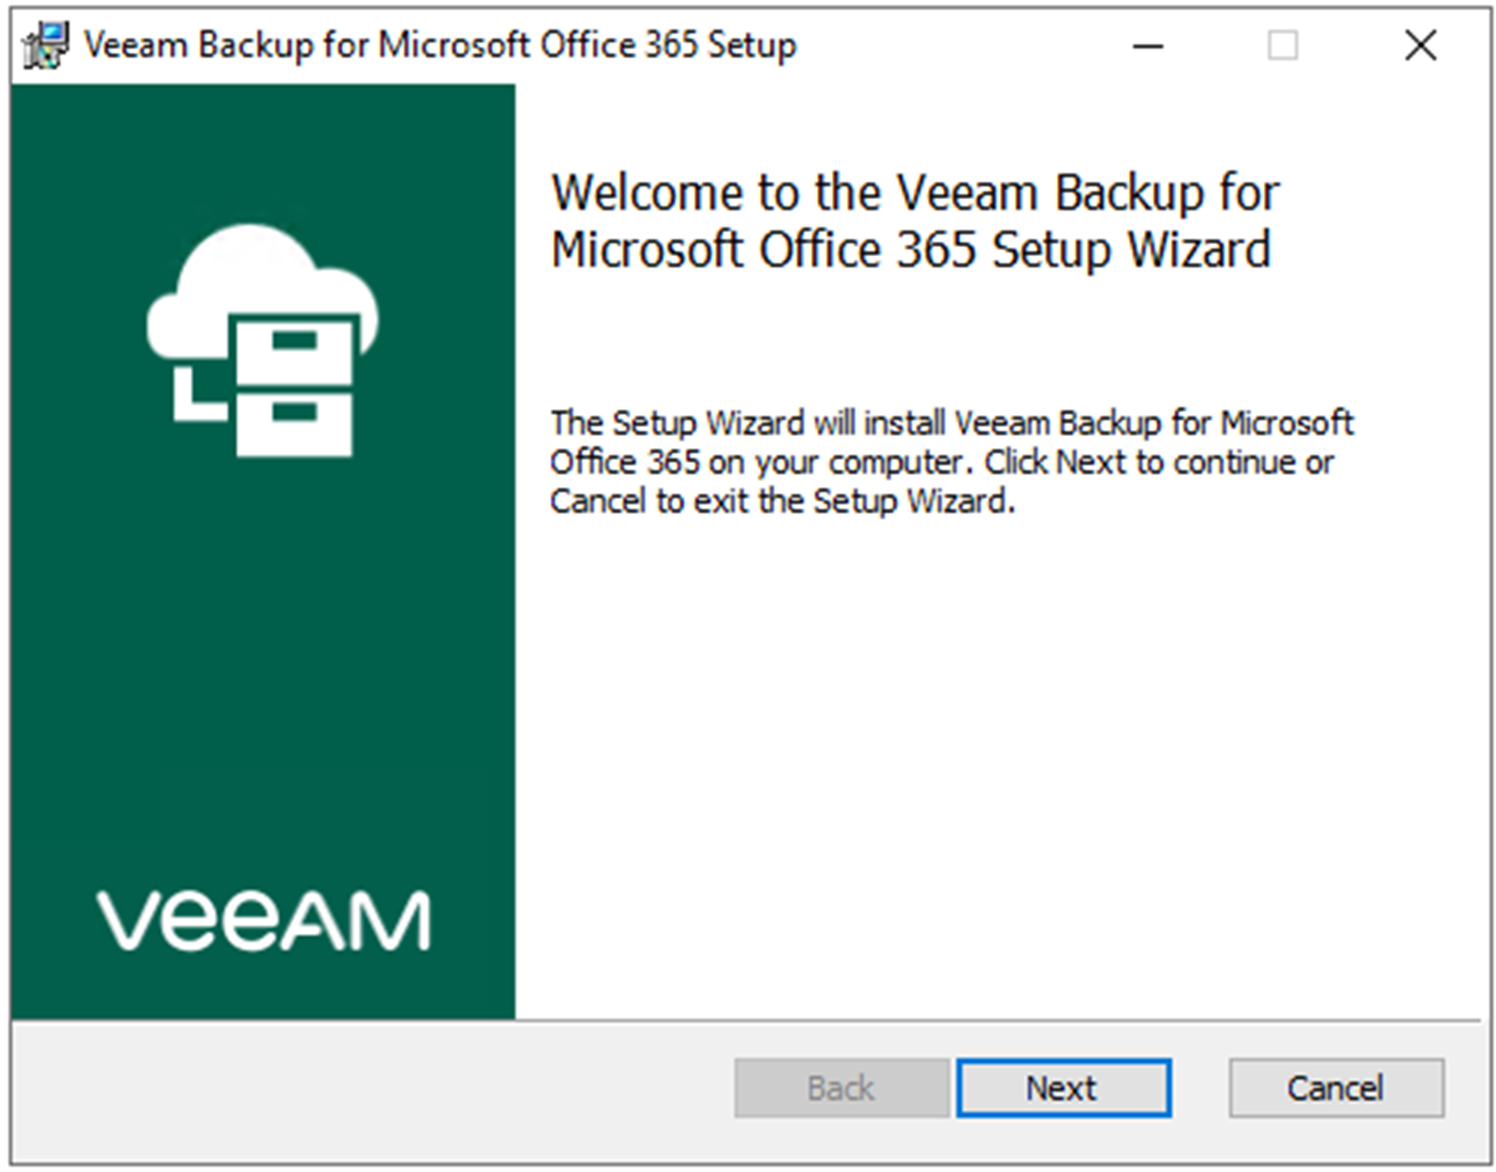 100320 2346 HowtoUpgrad9 - How to Upgrade Veeam Backup for Microsoft Office 365 to V4c Day 0 Update #Veeam #Office365 #Backup #Mvphour